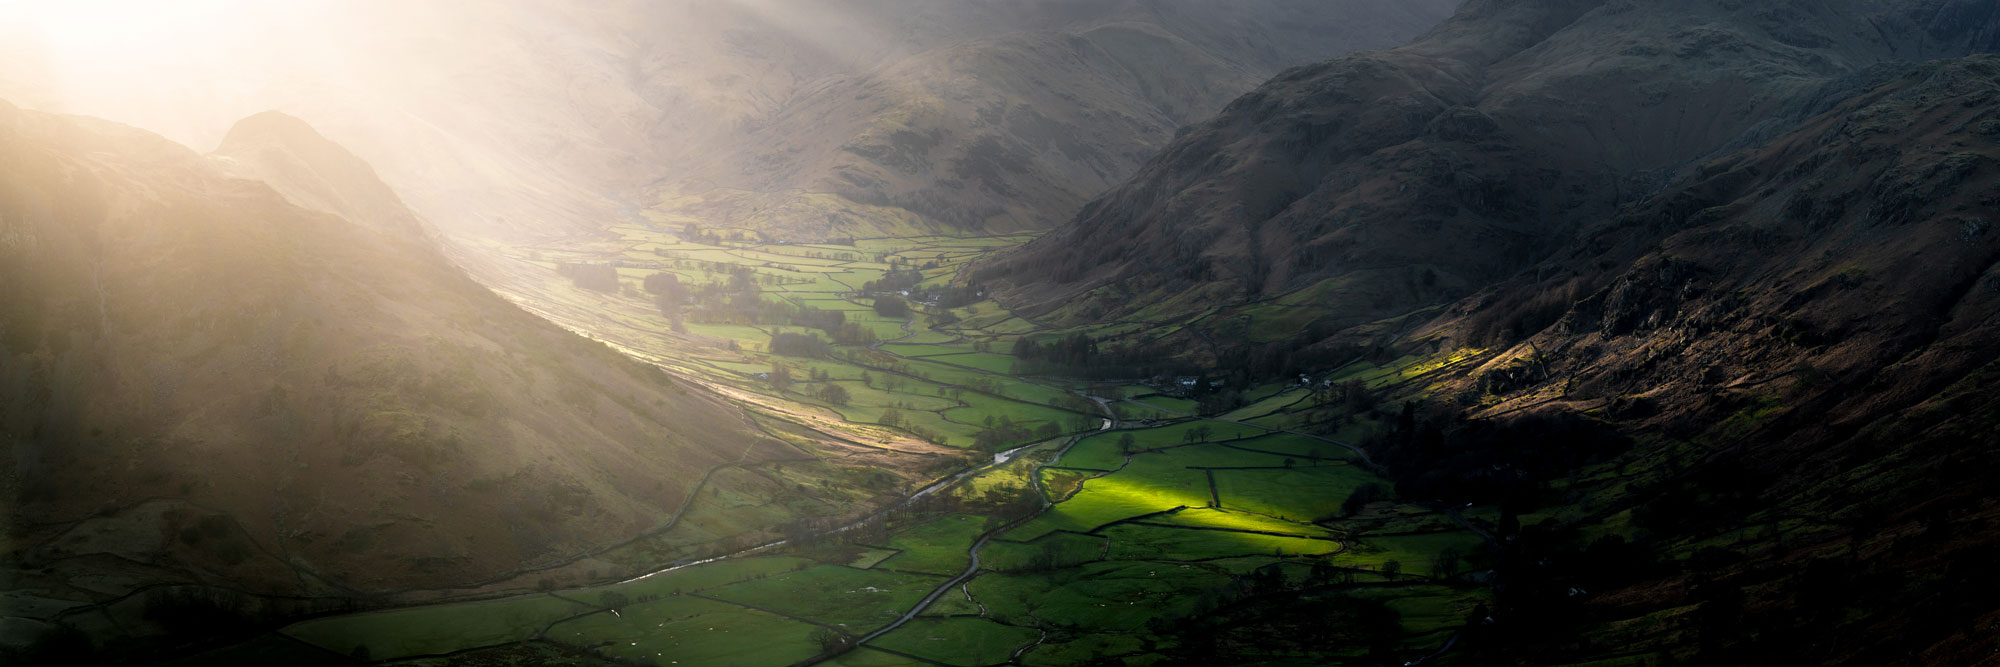 Panorama of a Lake District valley from a mountain top